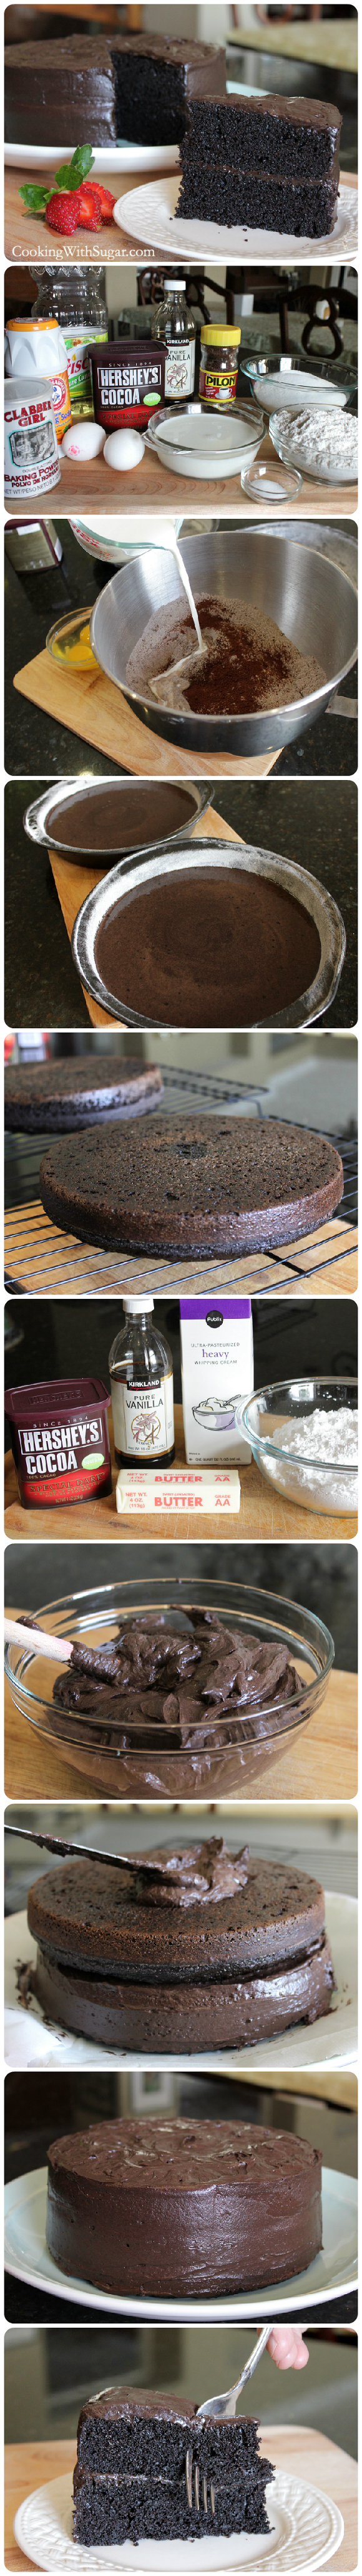 best-easiest-most-delicious-chocolate-cake-recipe-hershey-dark-especially